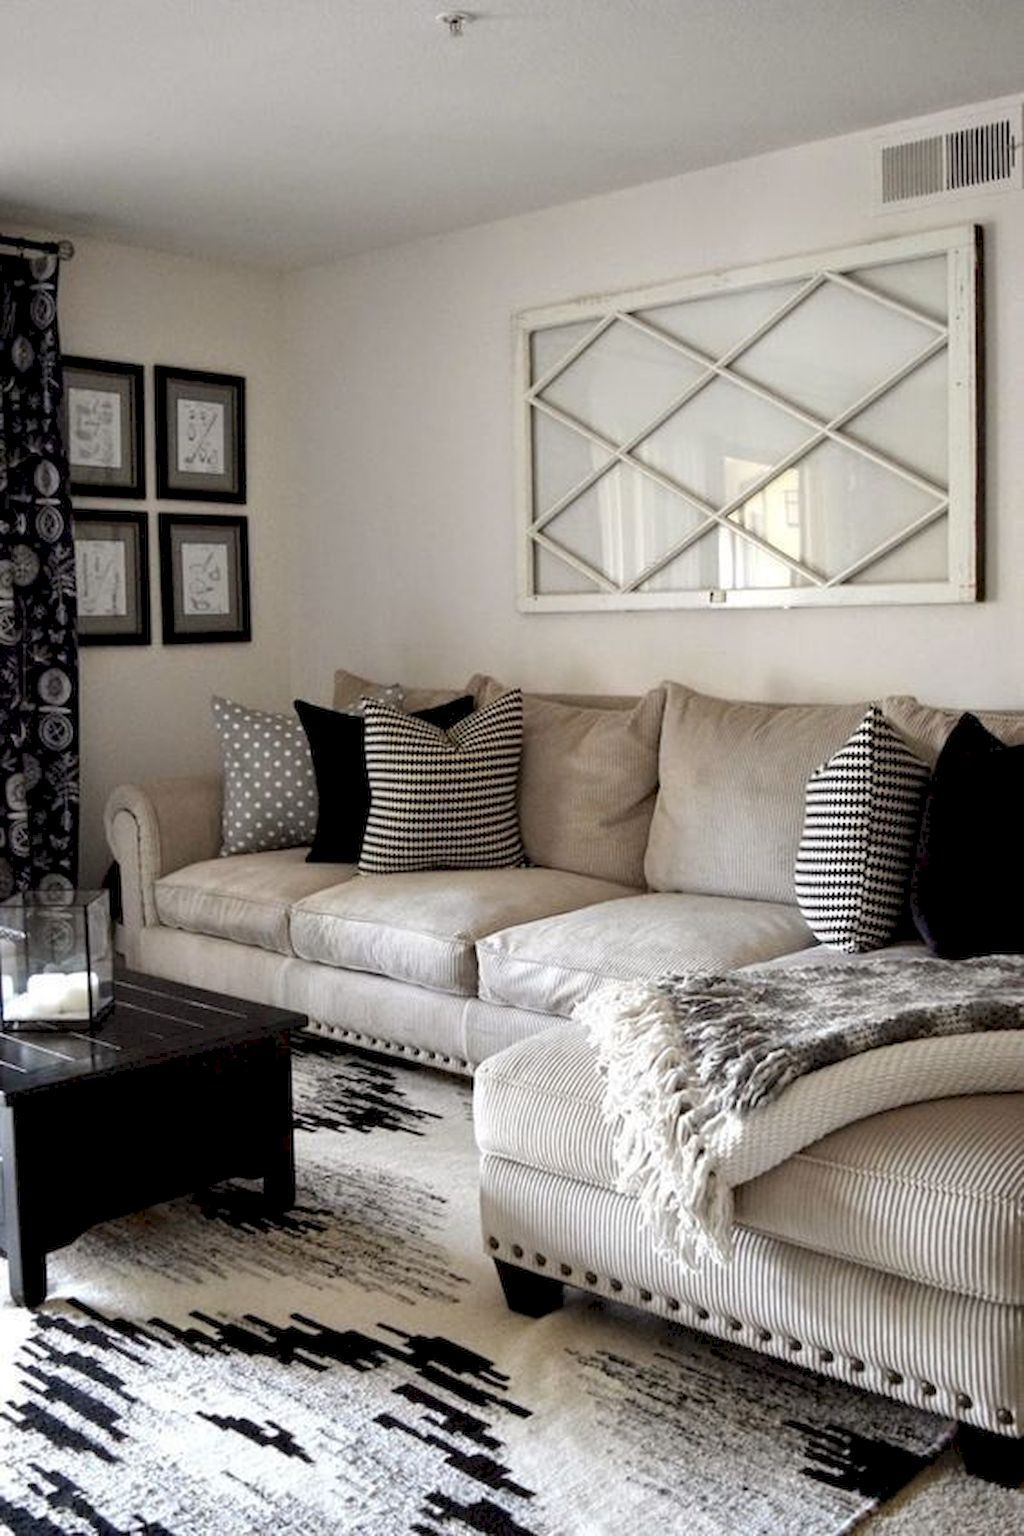 Family Room Design Ideas On A Budget: Adorable 36 Small Living Room Ideas On A Budget Https